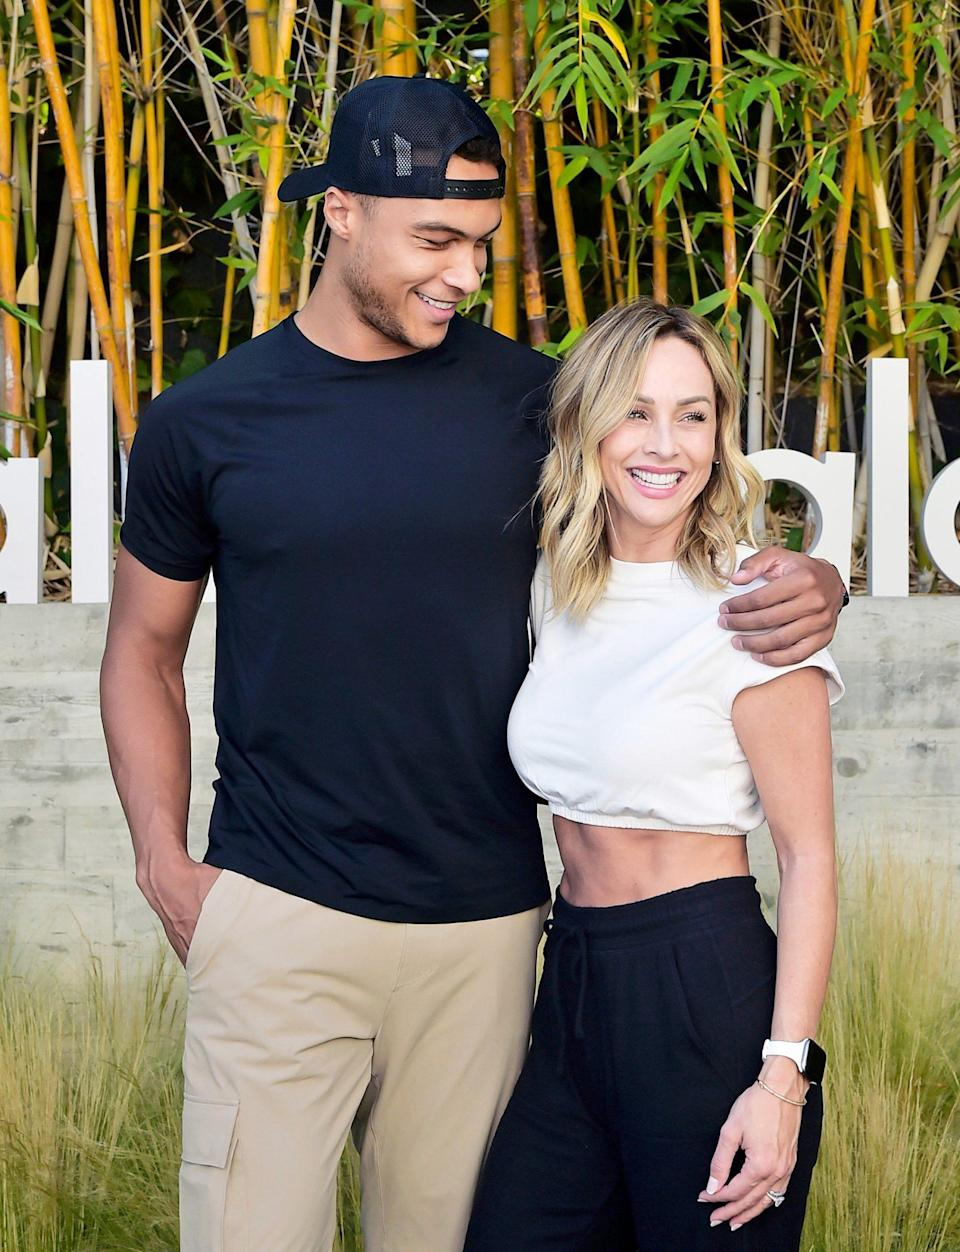 <p>Dale Moss and Clare Crawley pose together during Day 2 at Alo House in L.A. on June 23.</p>